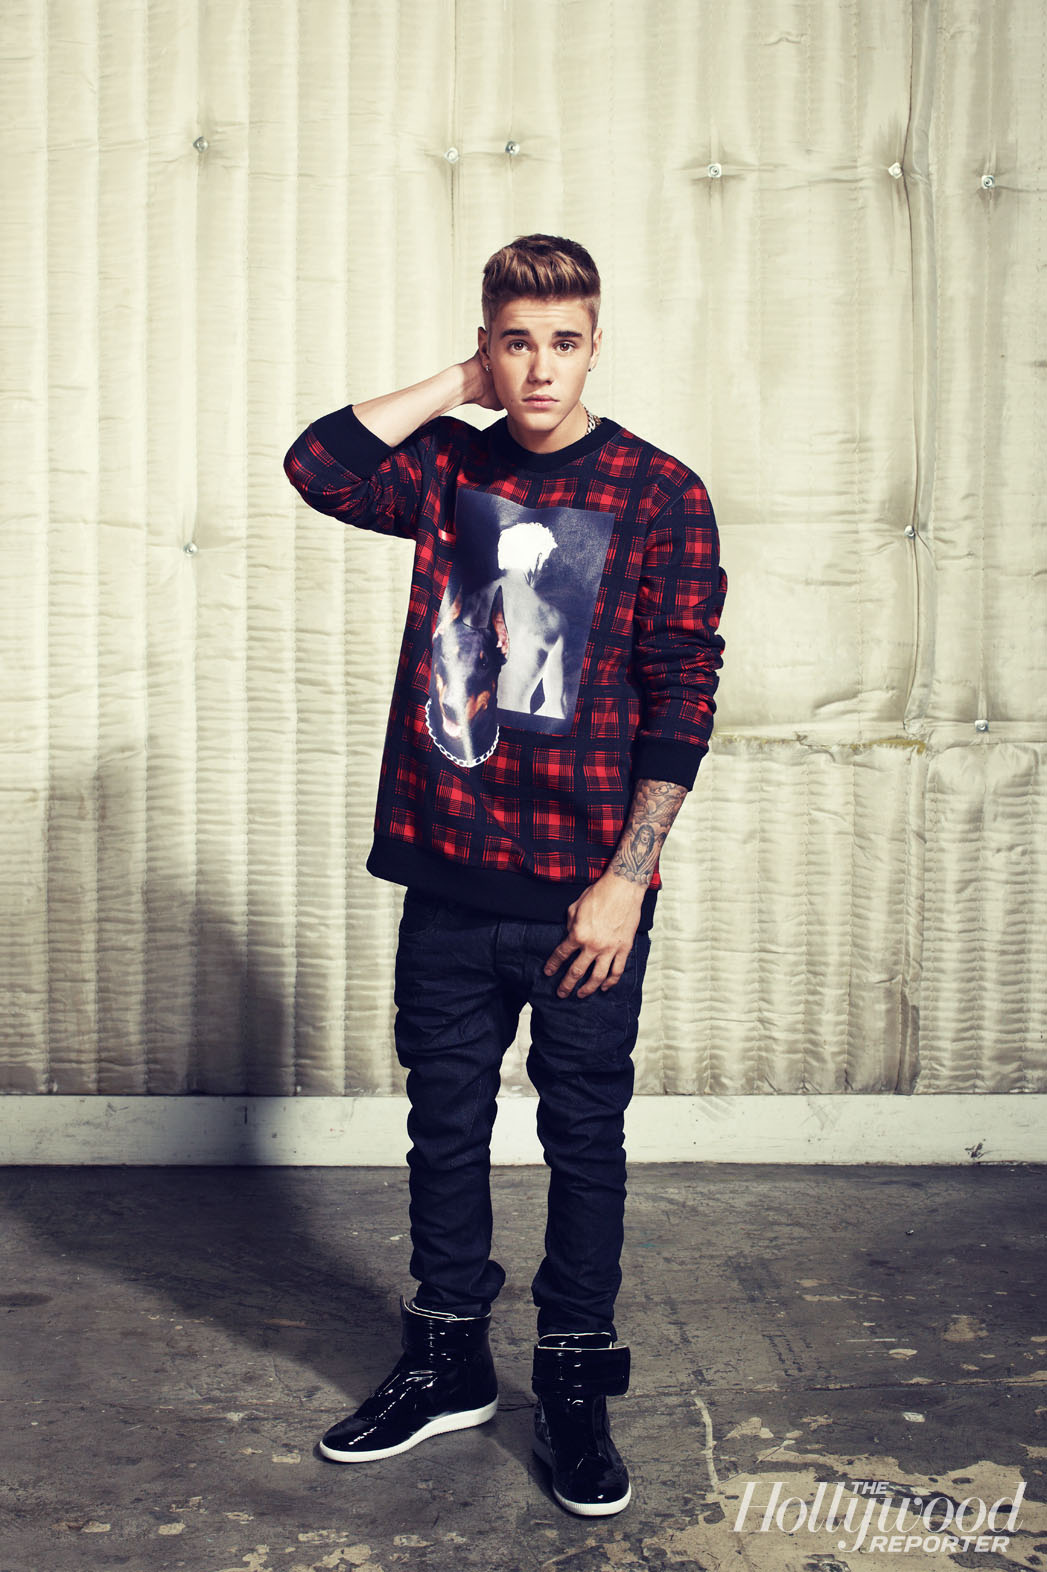 justin-bieber-hollywood-reporter-photoshoot-pictures-05